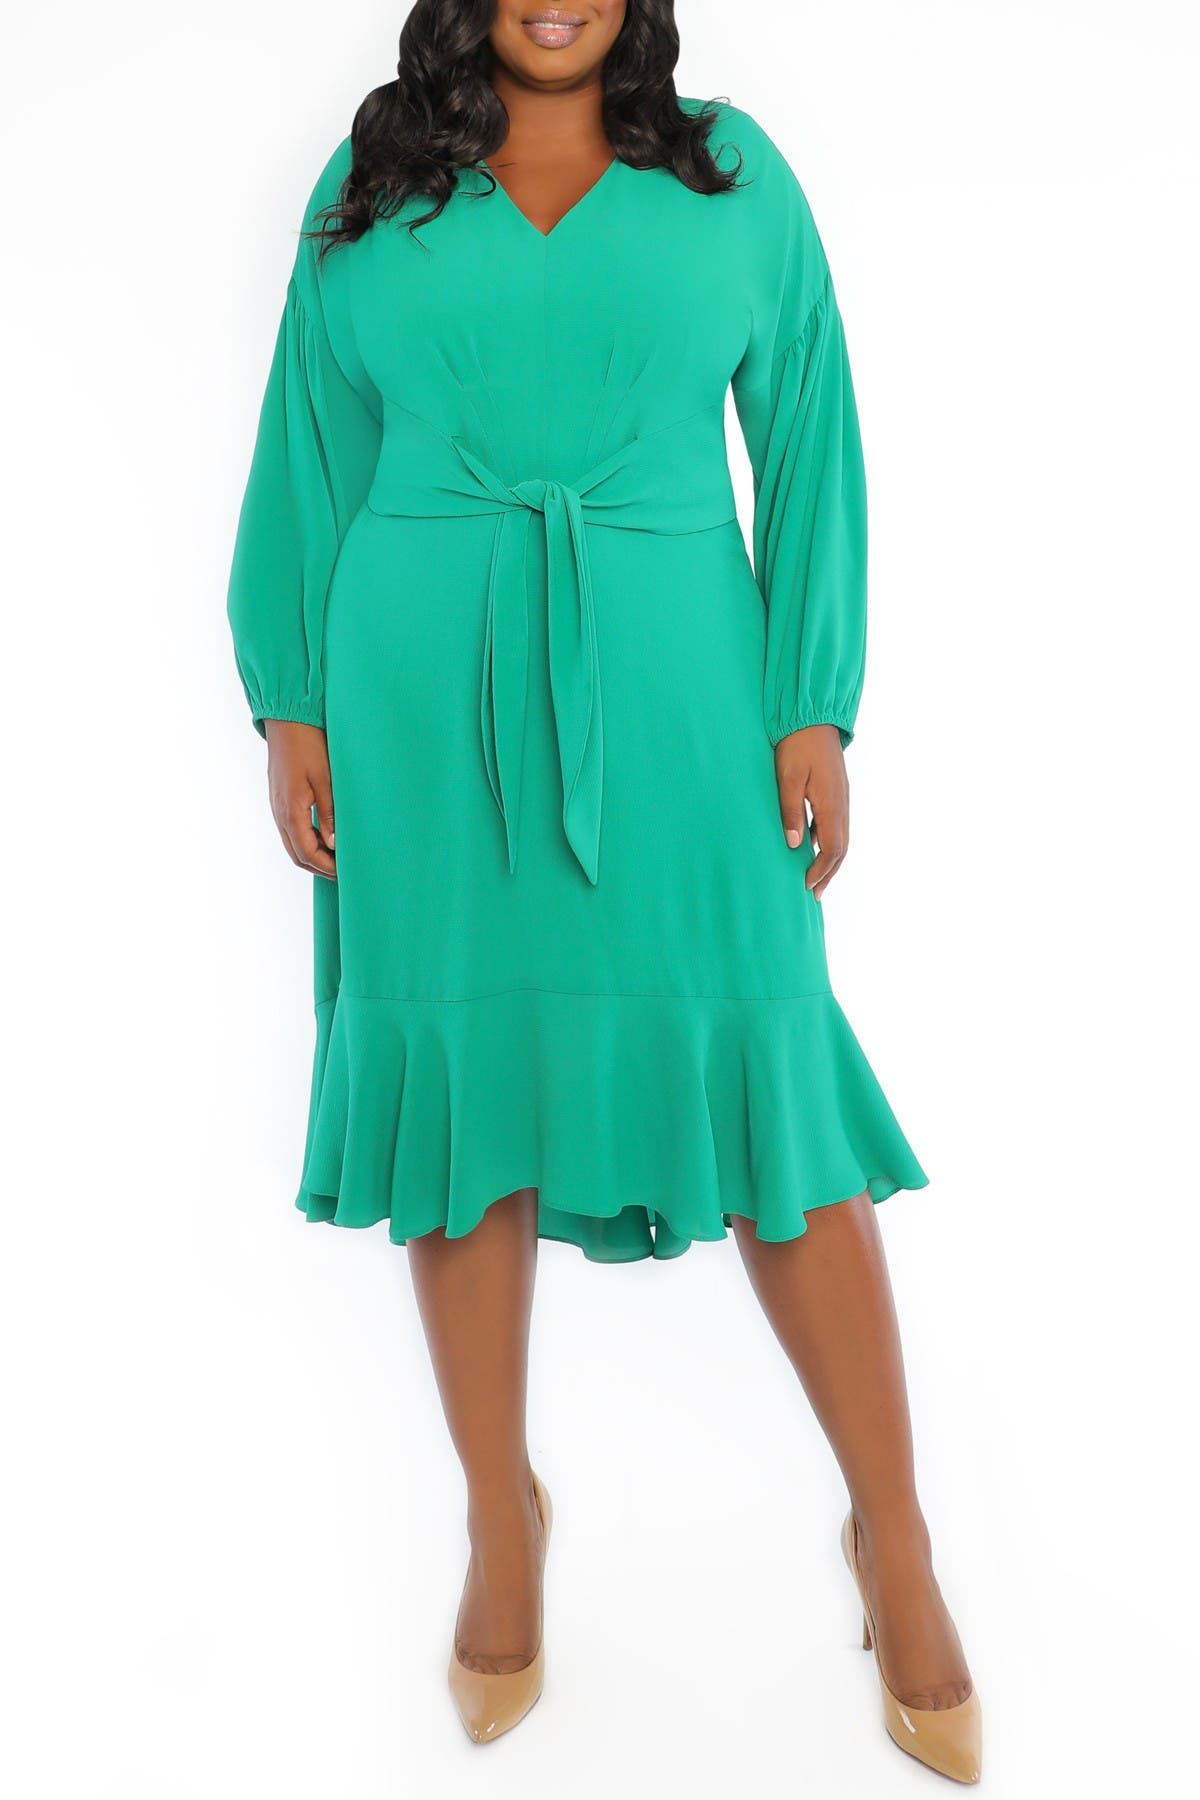 Image of London Times Catalina Crepe High Low Fit & Flare Dress